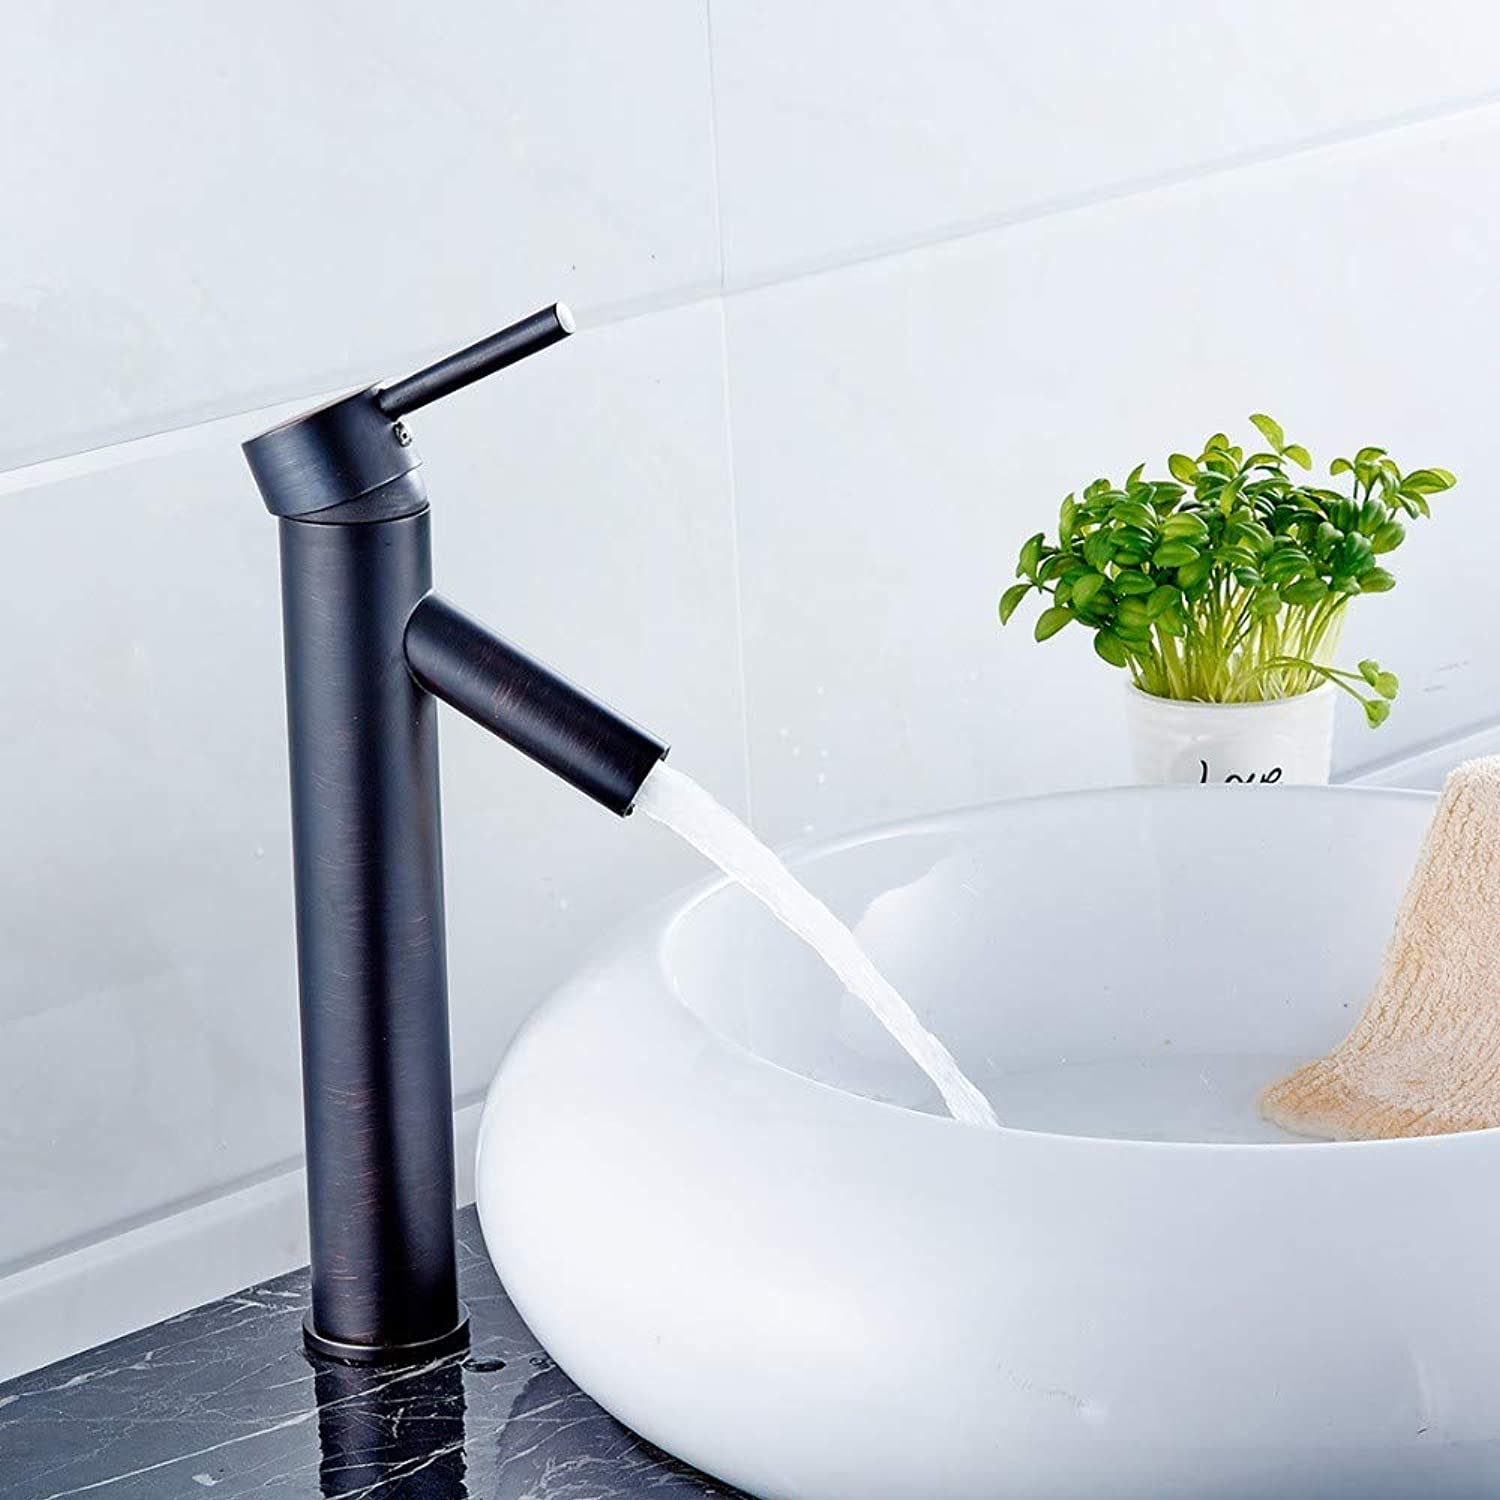 Floungey Kitchen Sink Taps Bathroom Sink Taps Oil Rubbed Bronze Faucet Bathroom Hot And Cold Water Washbasin Taps Black And Tall Basin Faucets Accessories